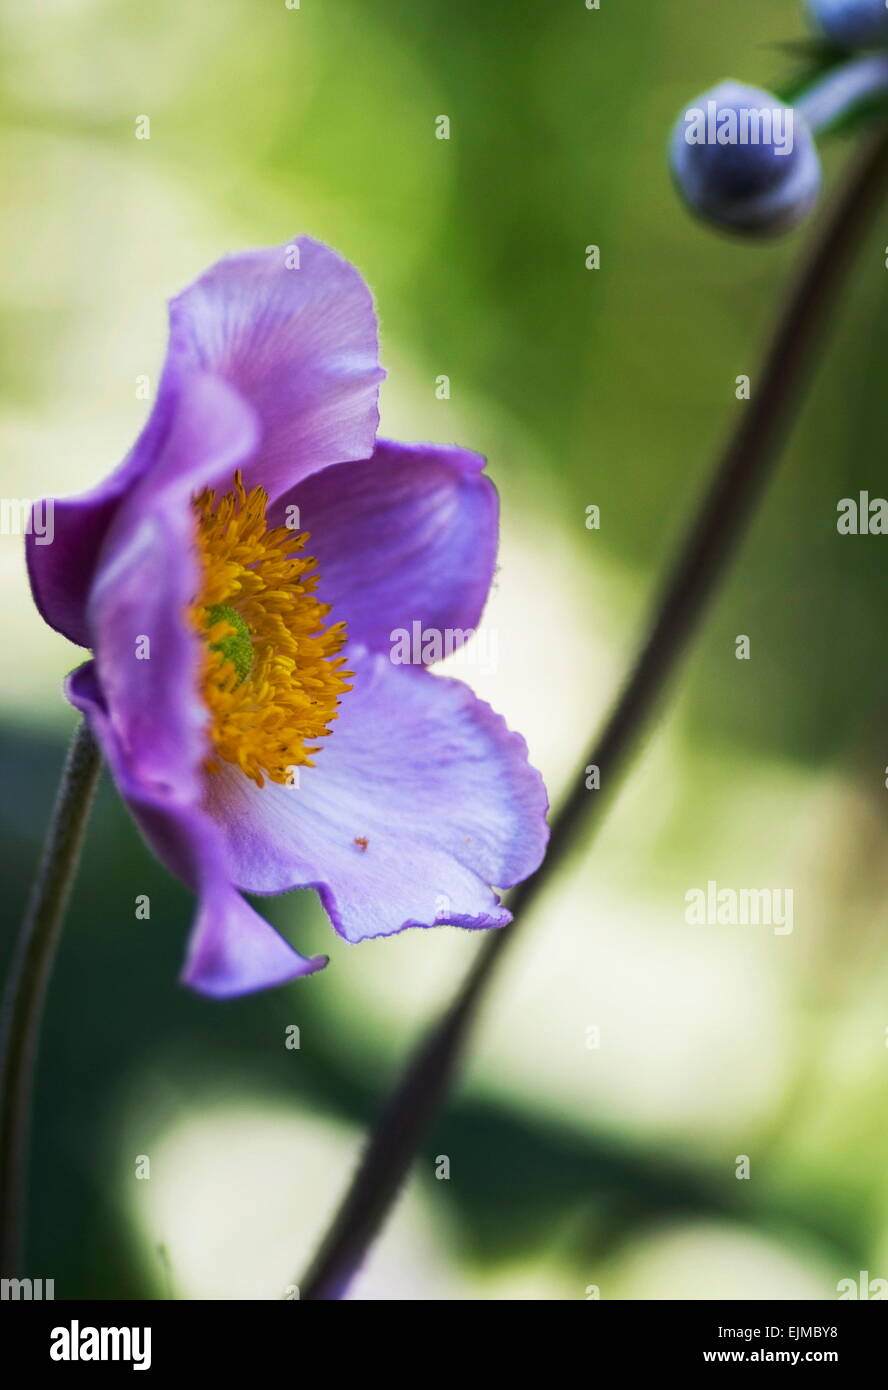 Japanese Anemone flower and bud looking out on the sunshine, green foliage in the background. - Stock Image